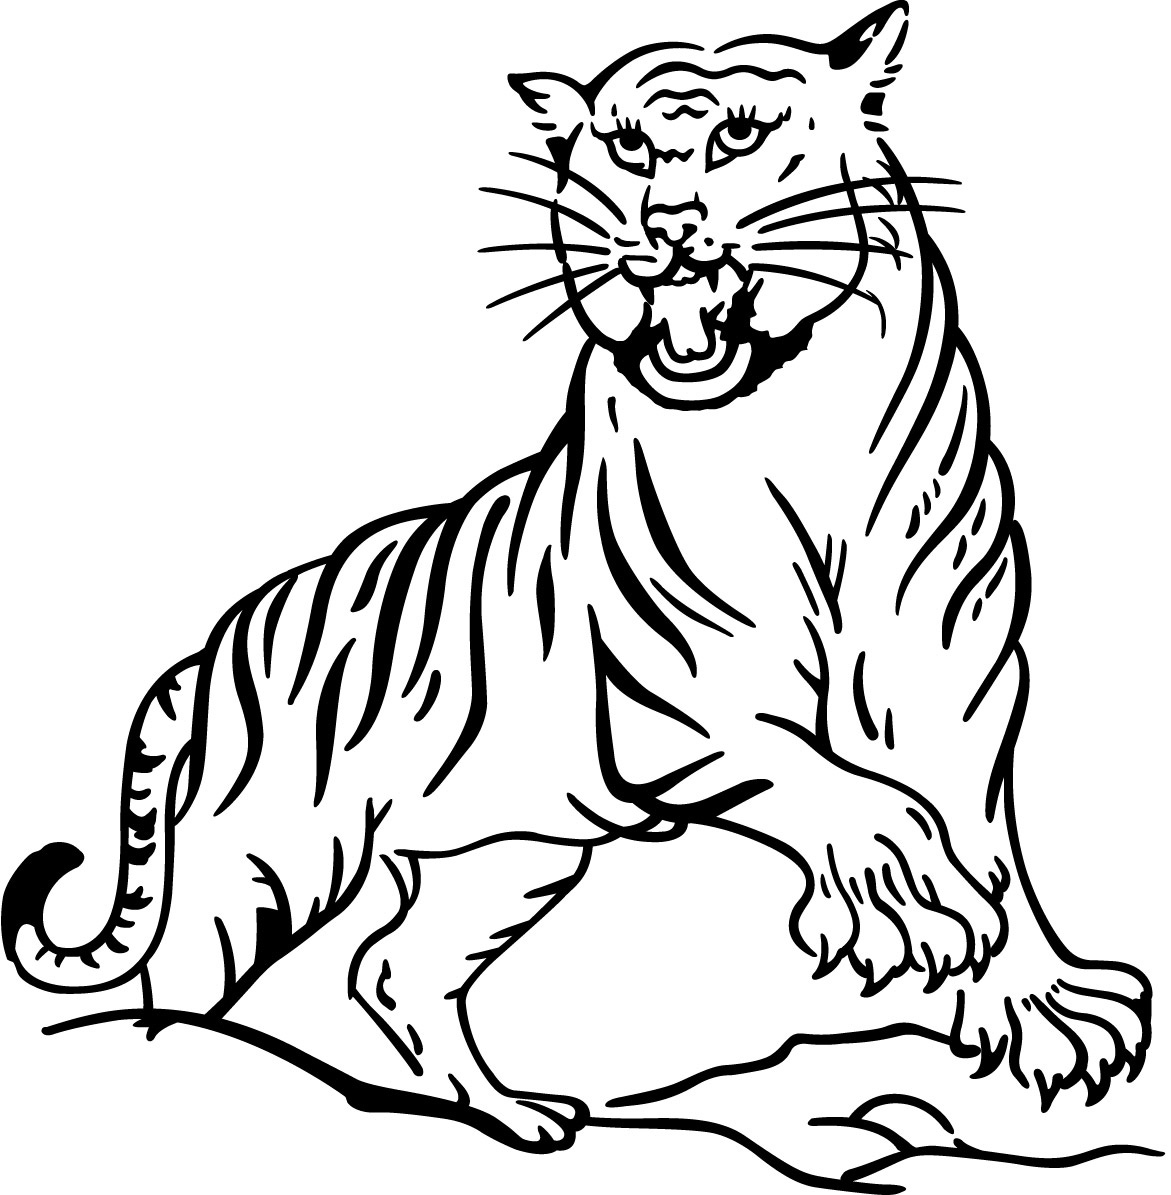 tiger coloring pages free printable tiger coloring pages for kids coloring pages tiger 1 1